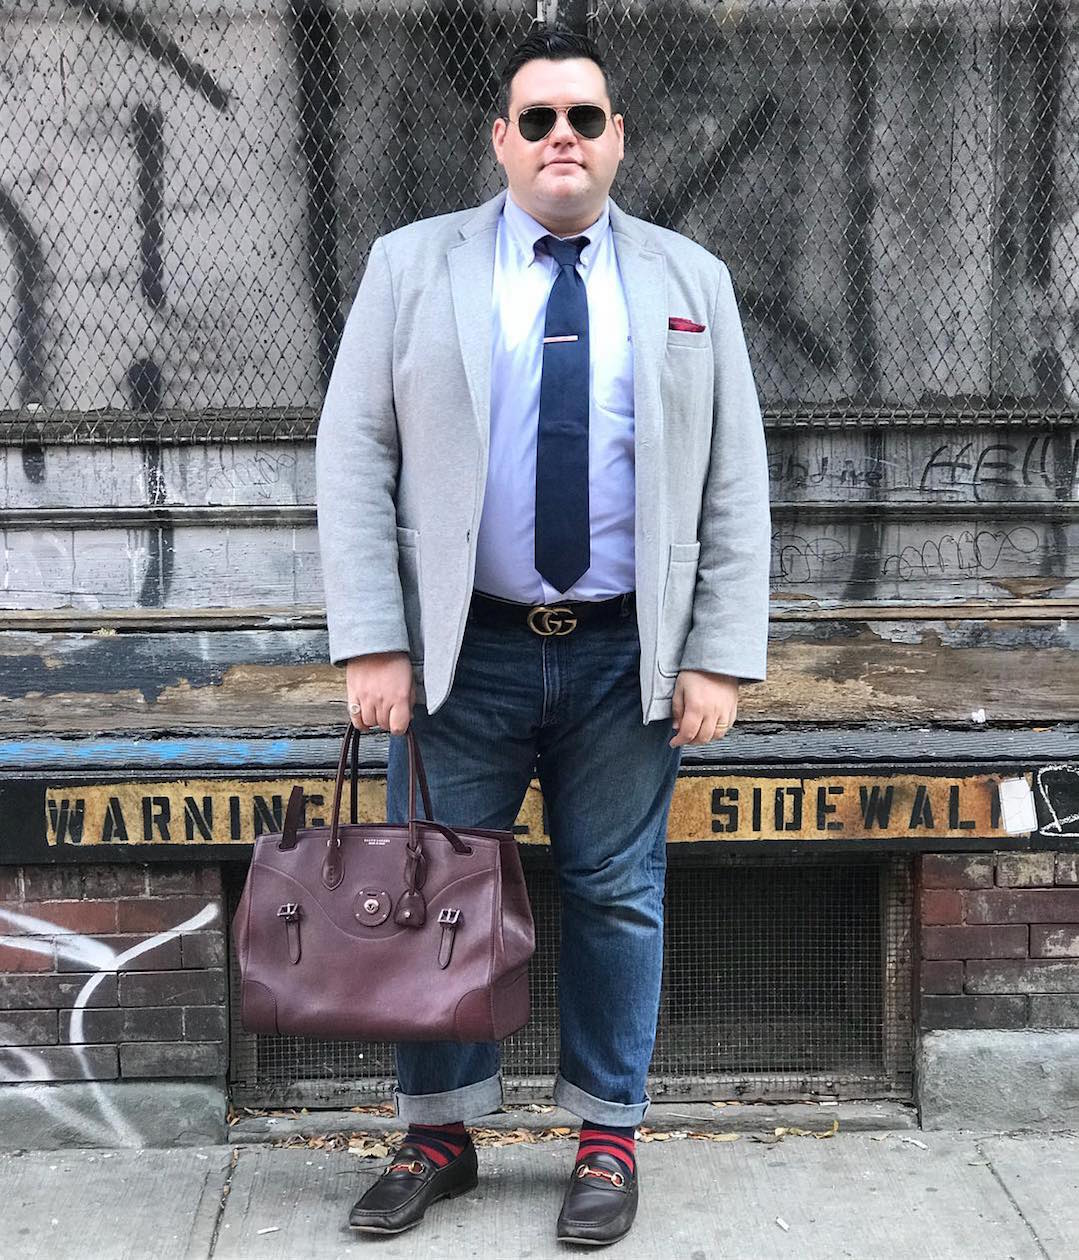 Ryan Dziadul with jacket, tie, bag, pocket square